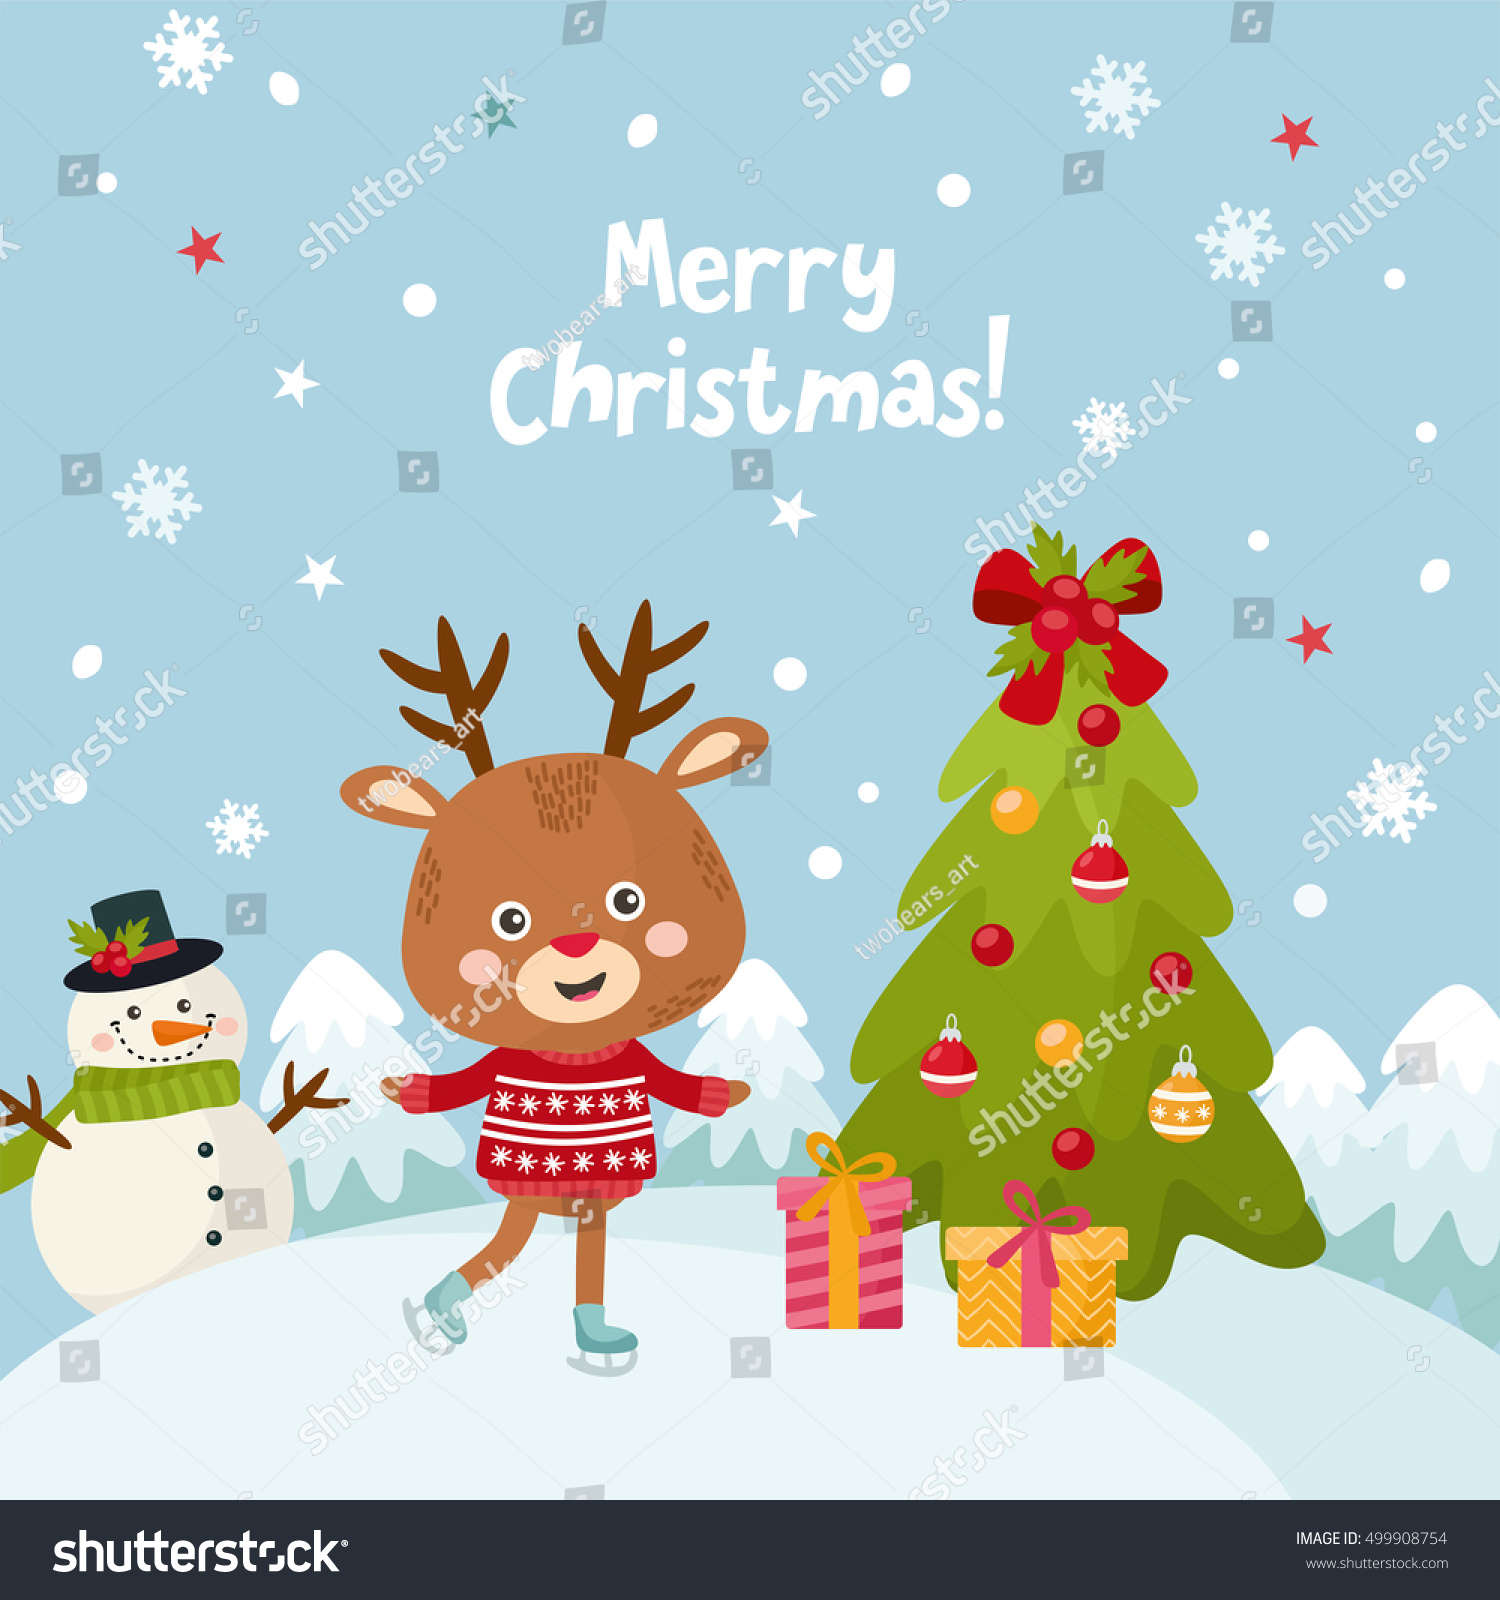 Merry Christmas Greeting Card With A Cute Little Deer Happy New